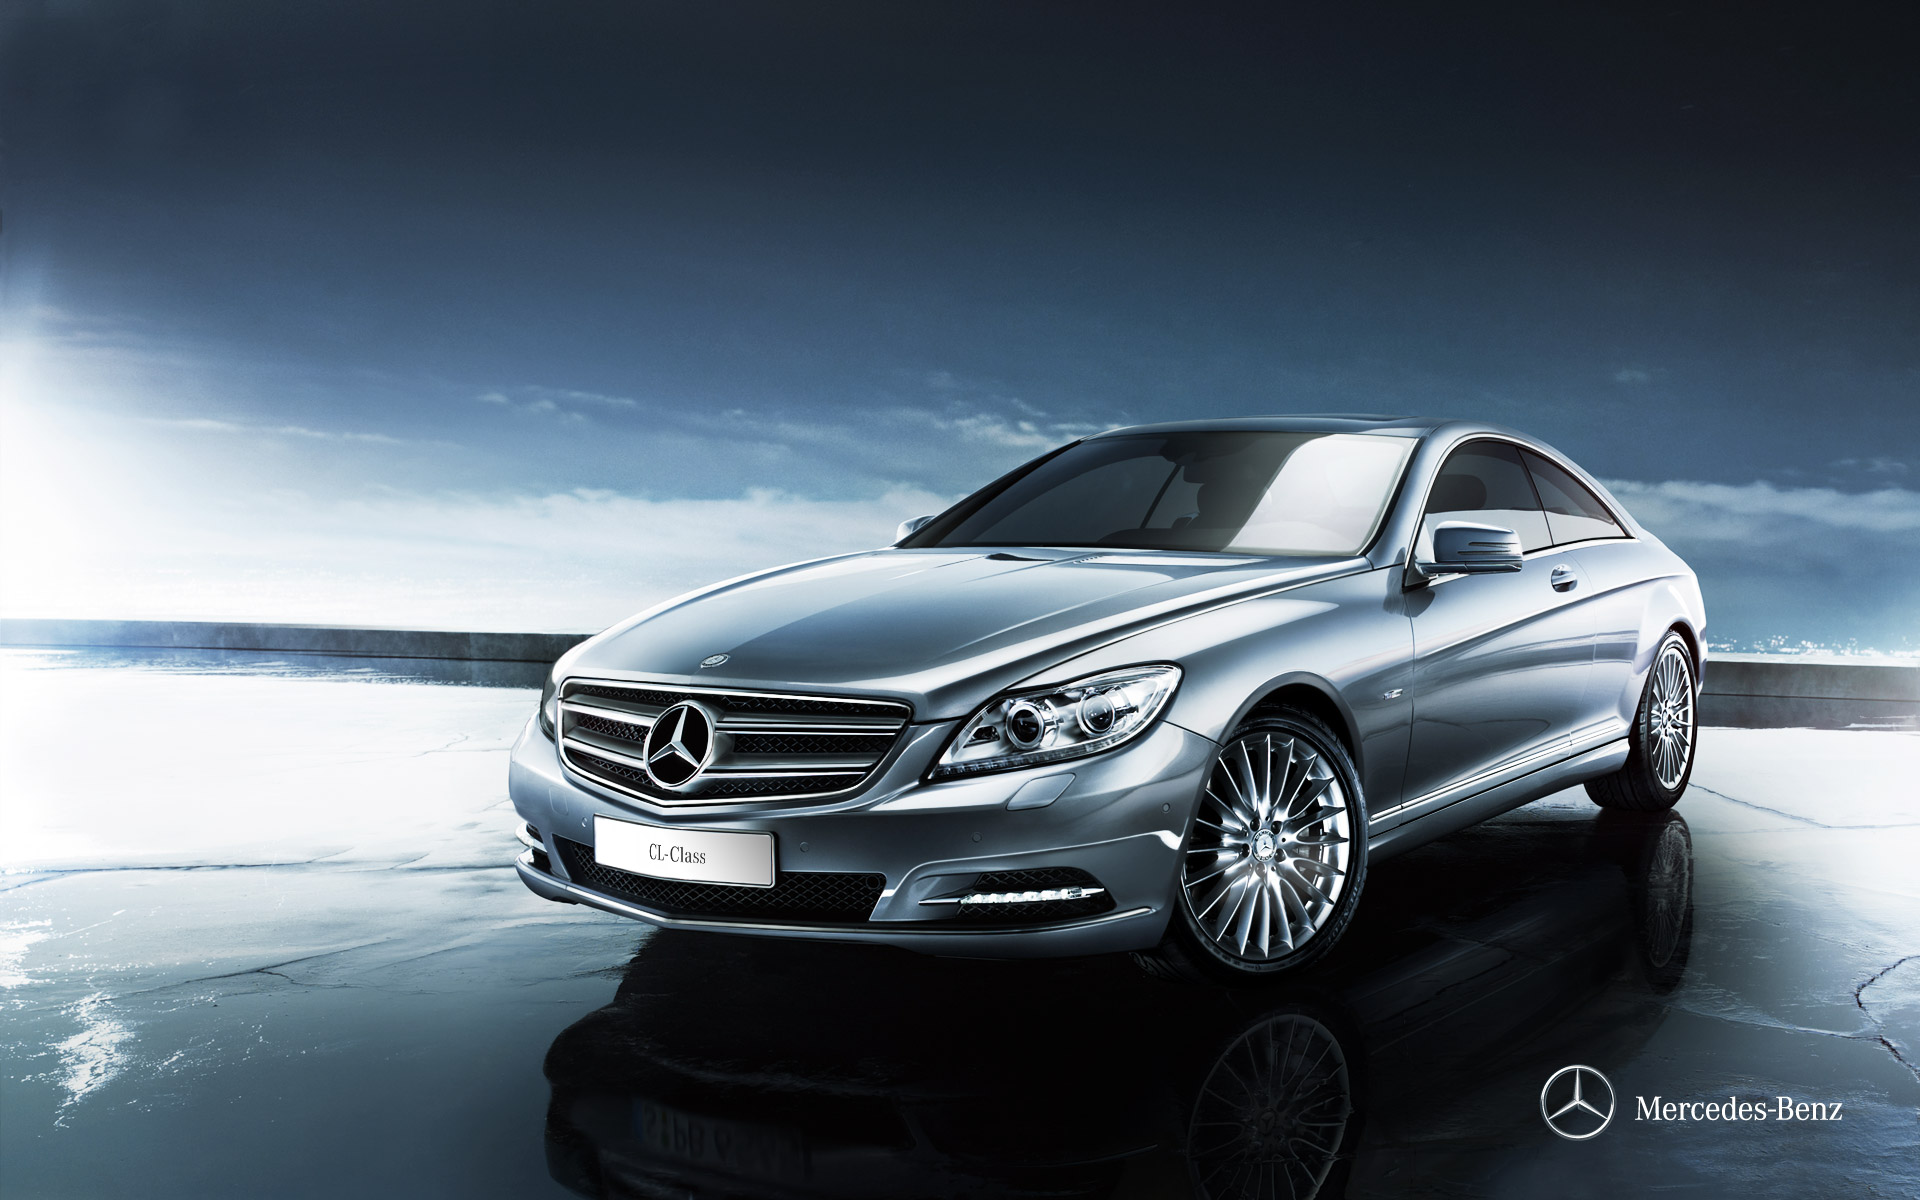 Car pictures list for mercedes benz cl class 2012 cl 65 for Mercedes benz auto loan rates